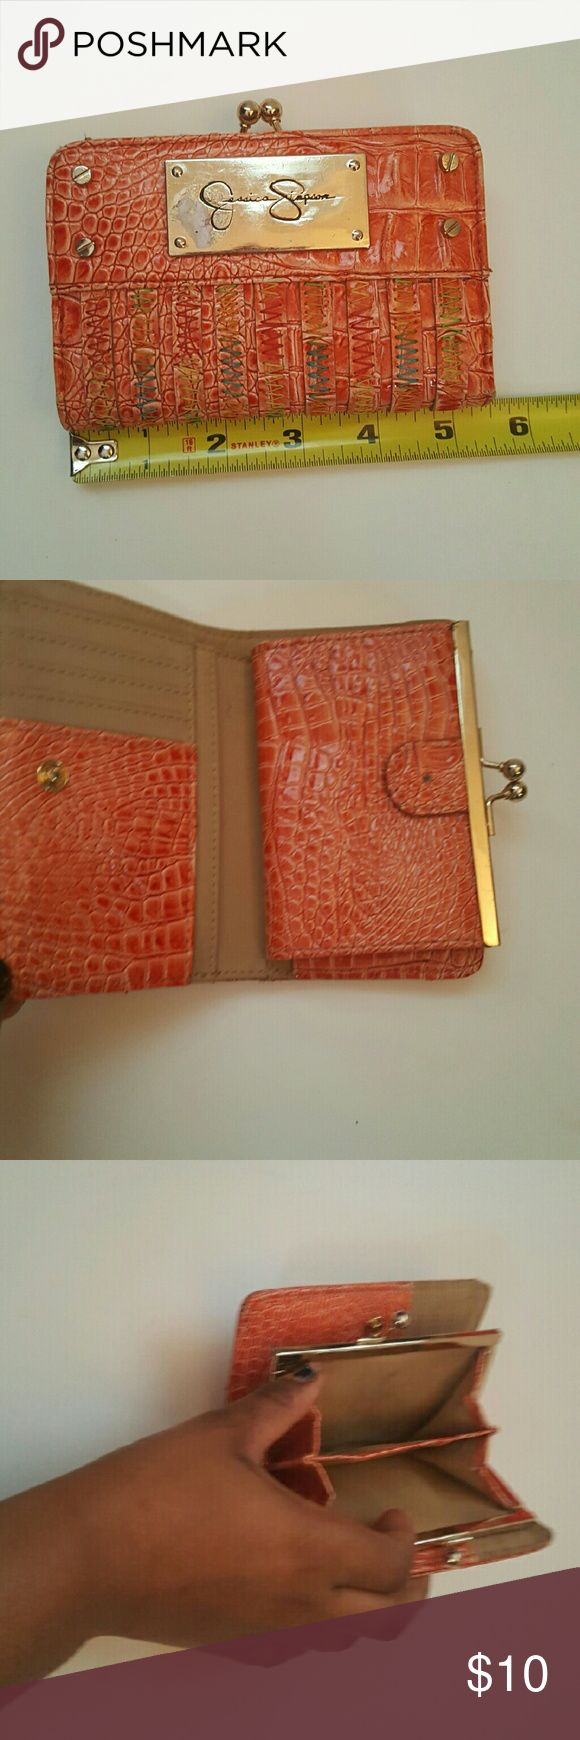 Jessica Simpson Orange Wallet Okay condition  A few black marks  I'm no longer interested in using the wallet.  Jt needs a new home! Jessica Simpson Bags Wallets